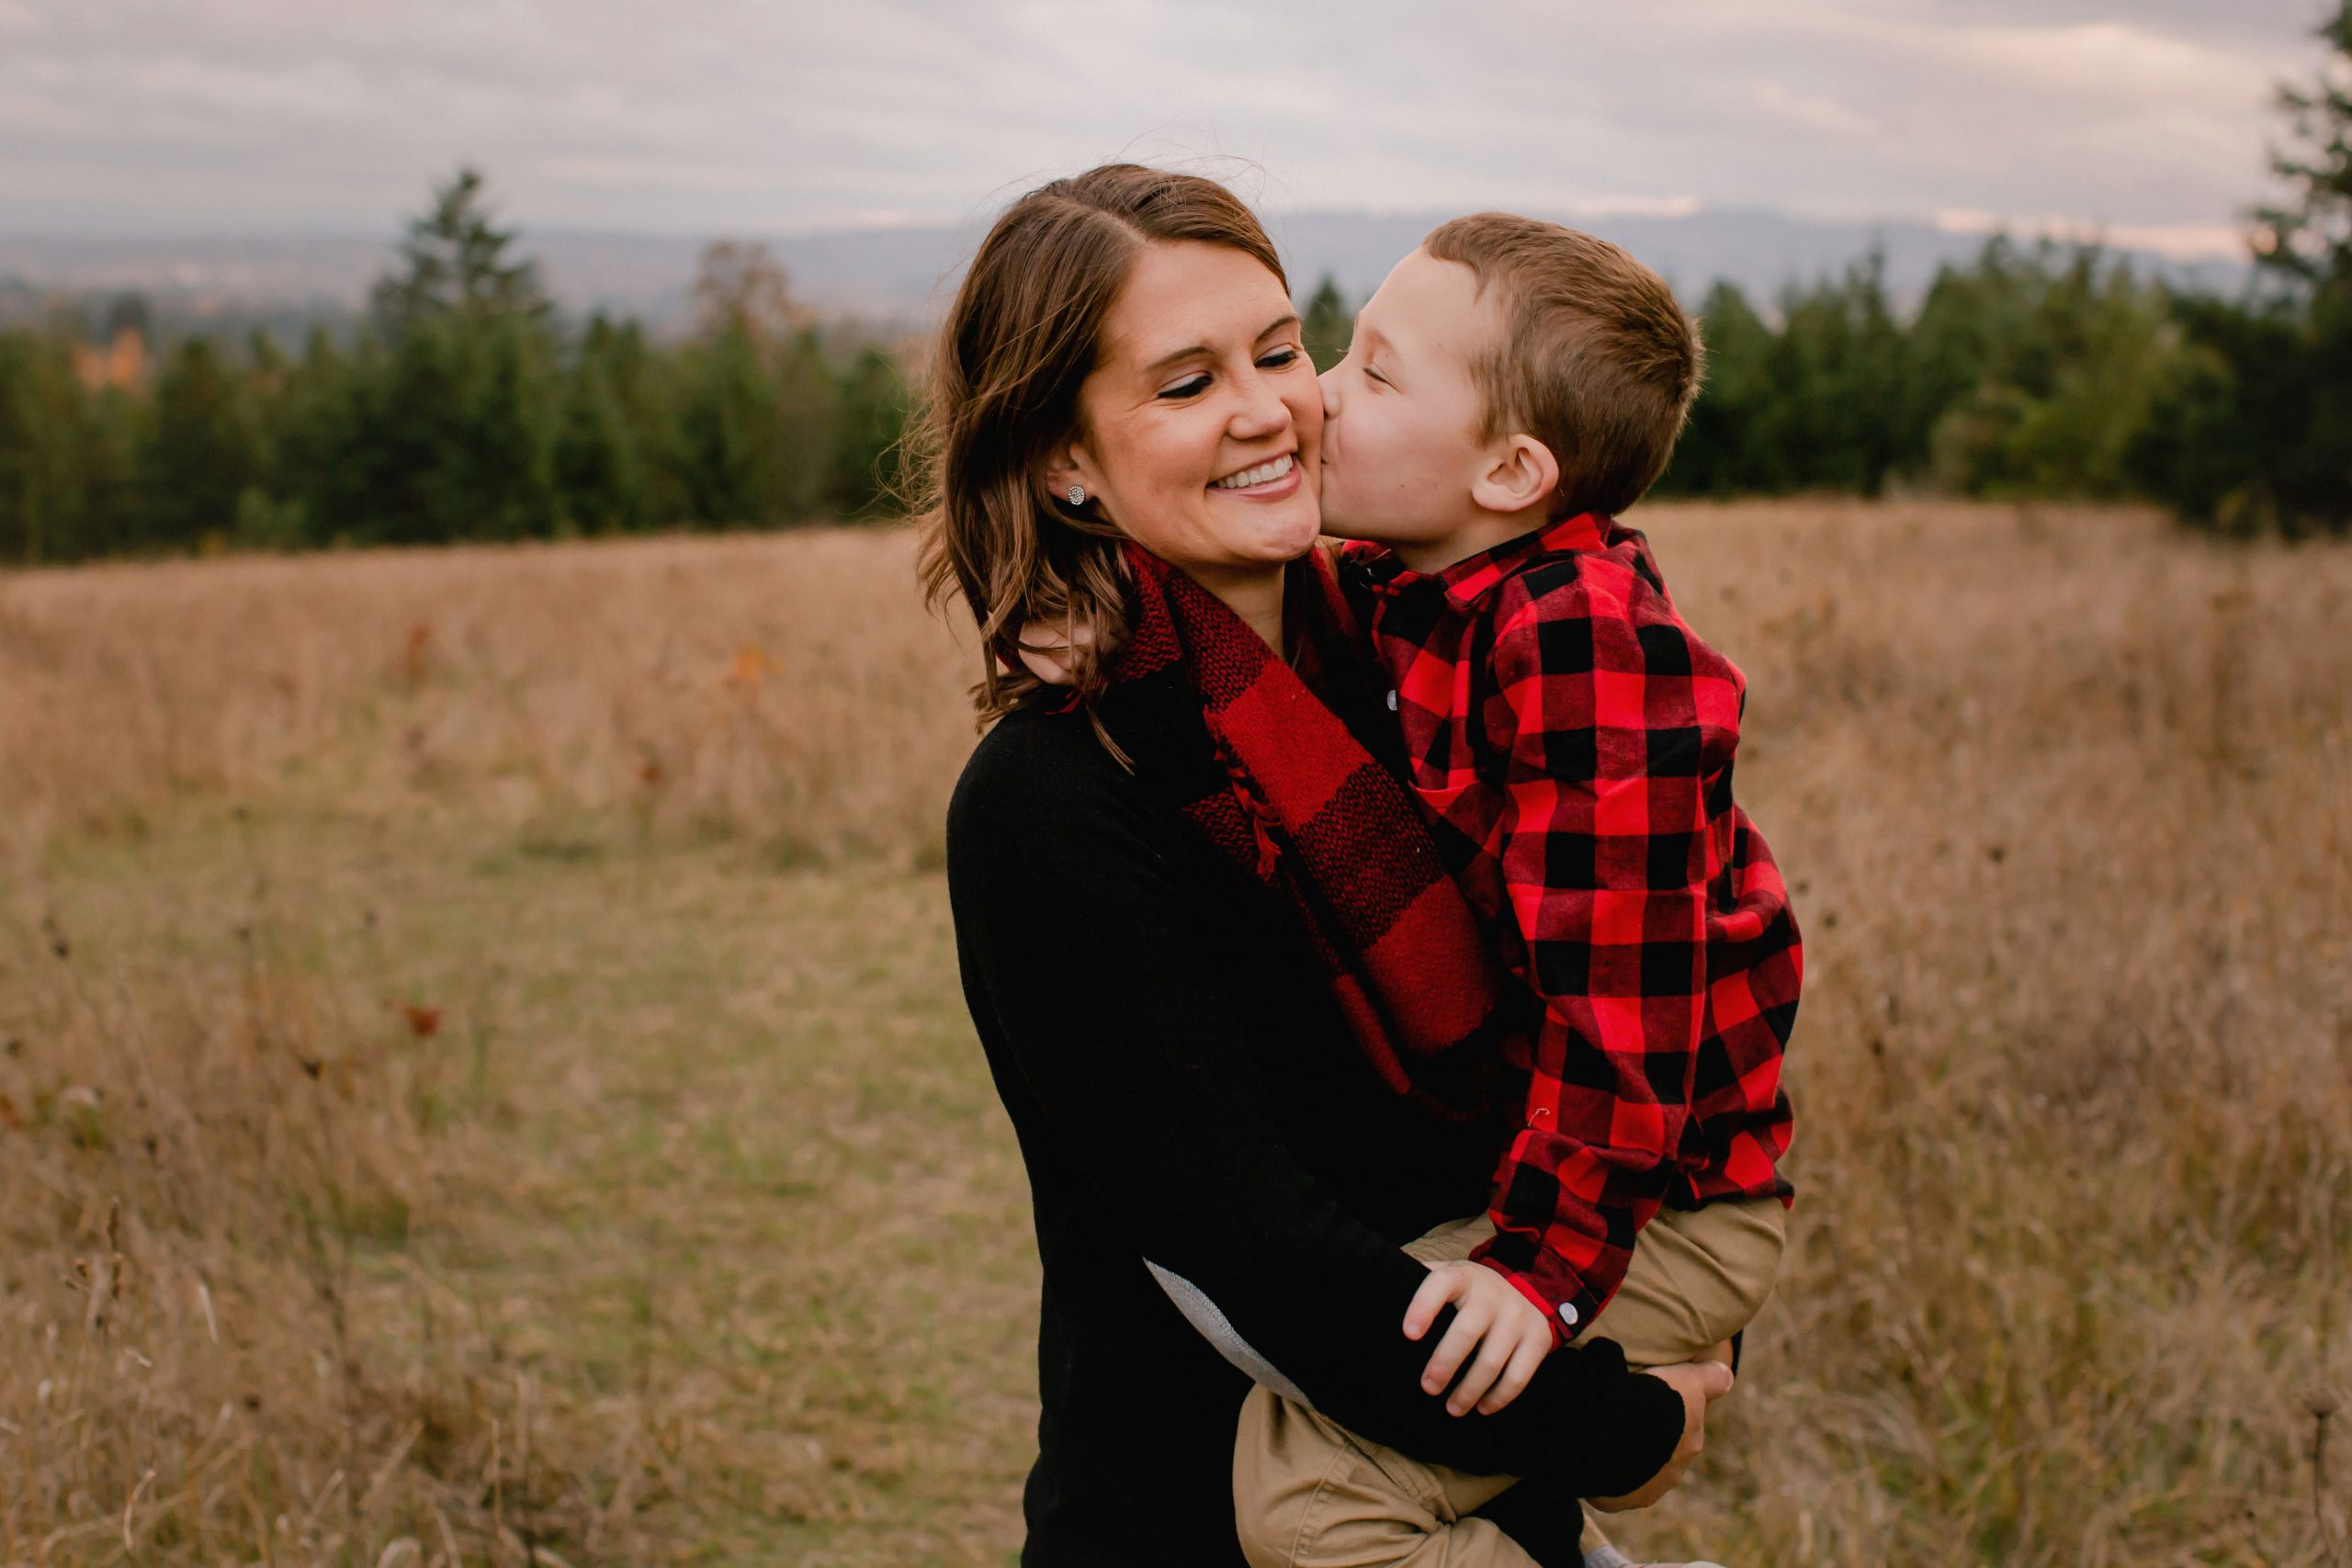 Family Adventure at Cooper Mountain Nature Park in Beaverton Oregon by Portrait Photographer Annie Helen